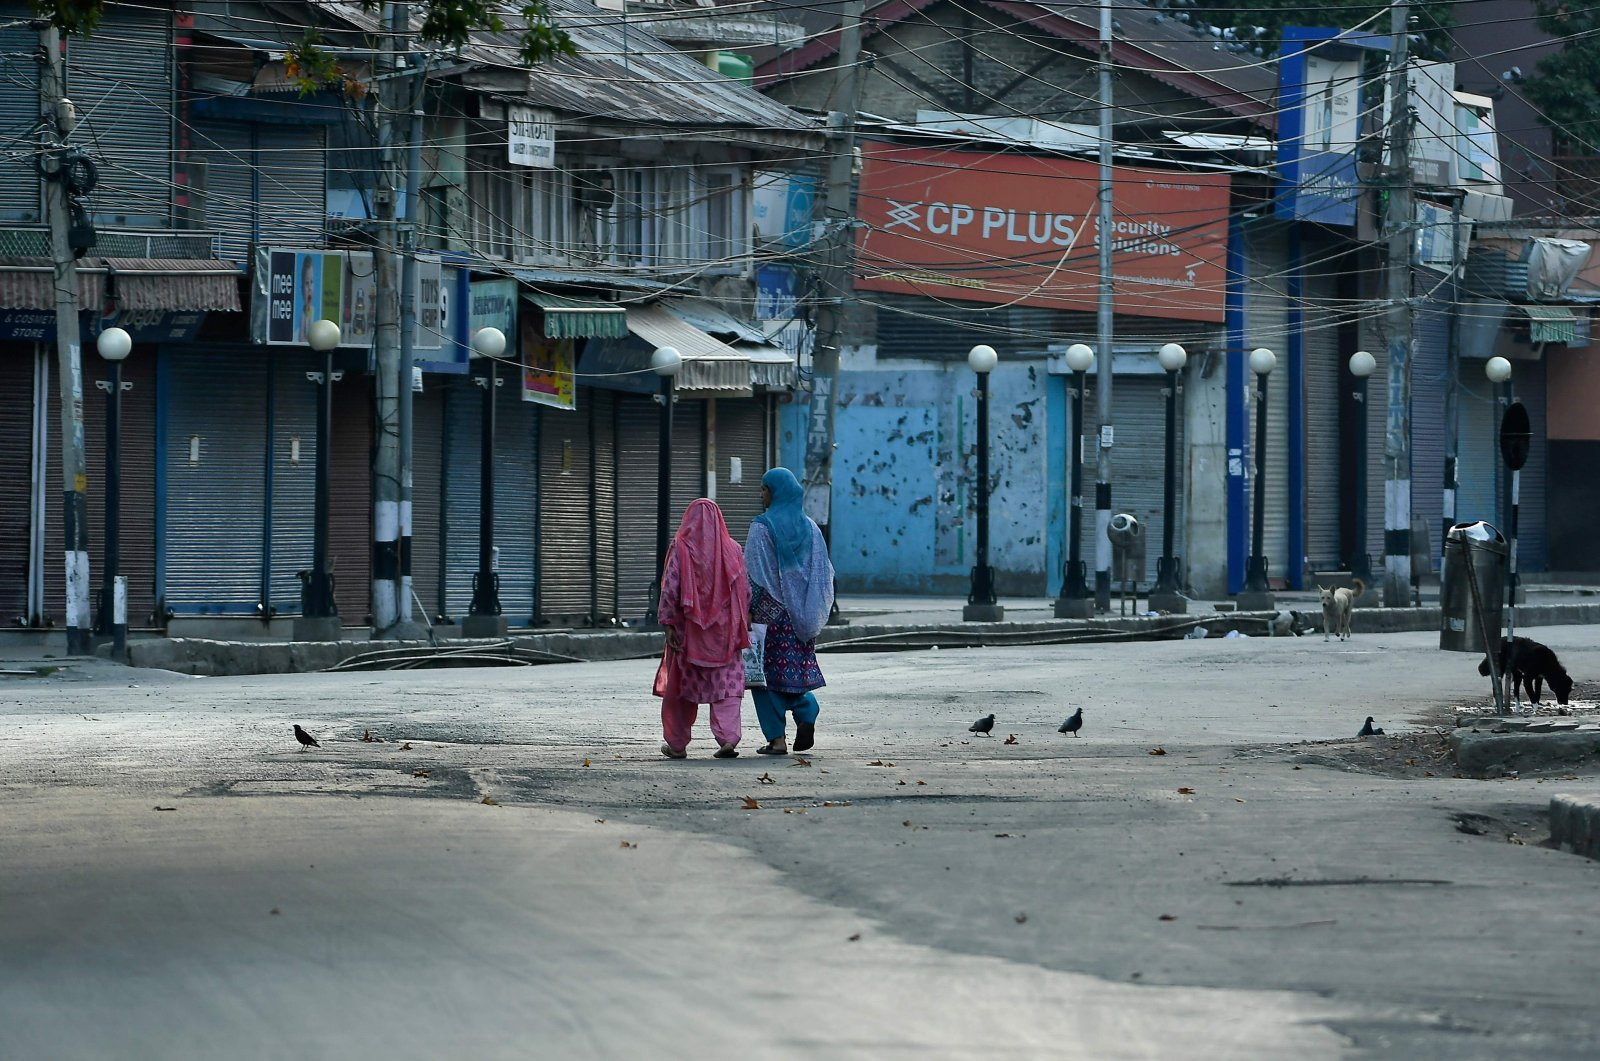 Women walk before a curfew is imposed by the Indian government, Srinagar, Jammu and Kashmir, Aug. 4, 2020. (AFP Photo)